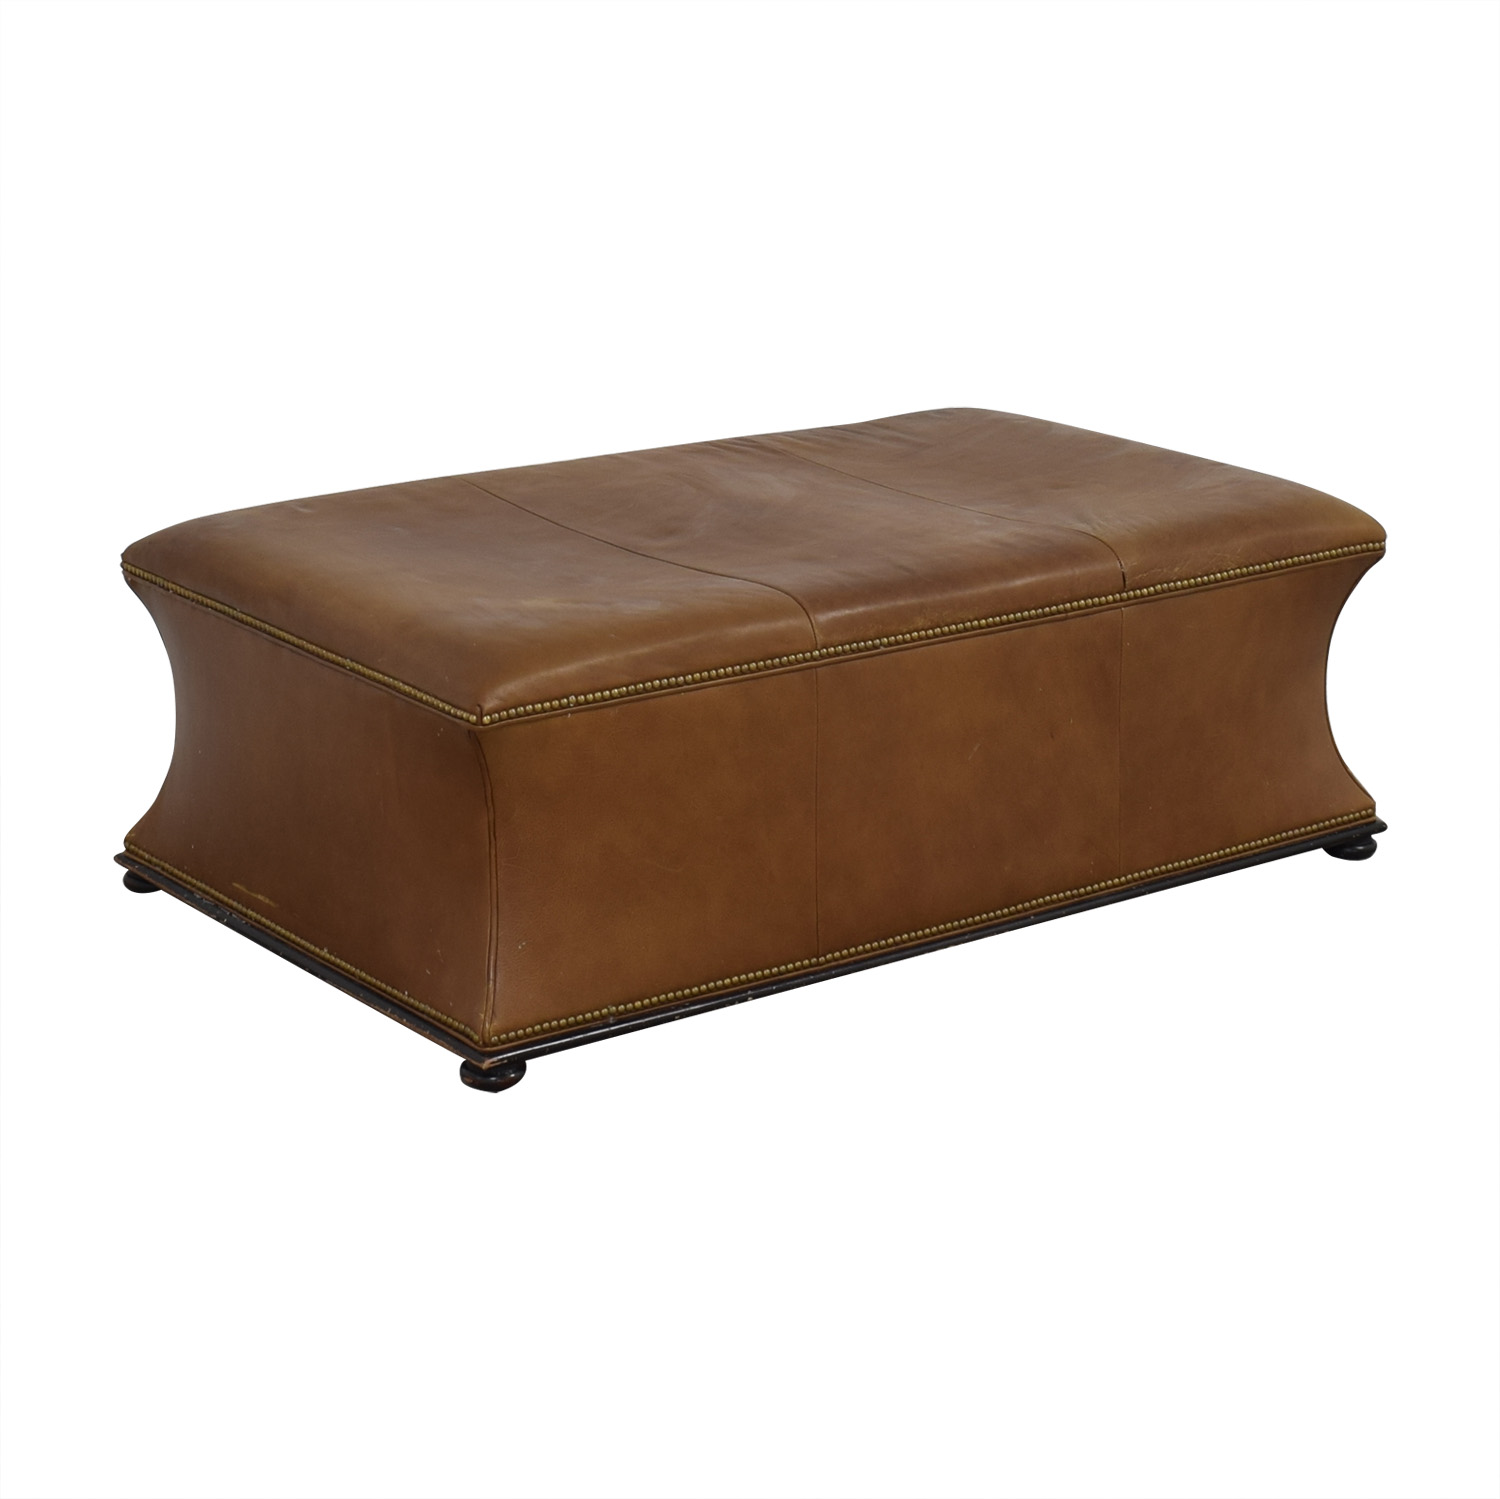 Hickory Chair Hickory Chair Leather Ottoman used